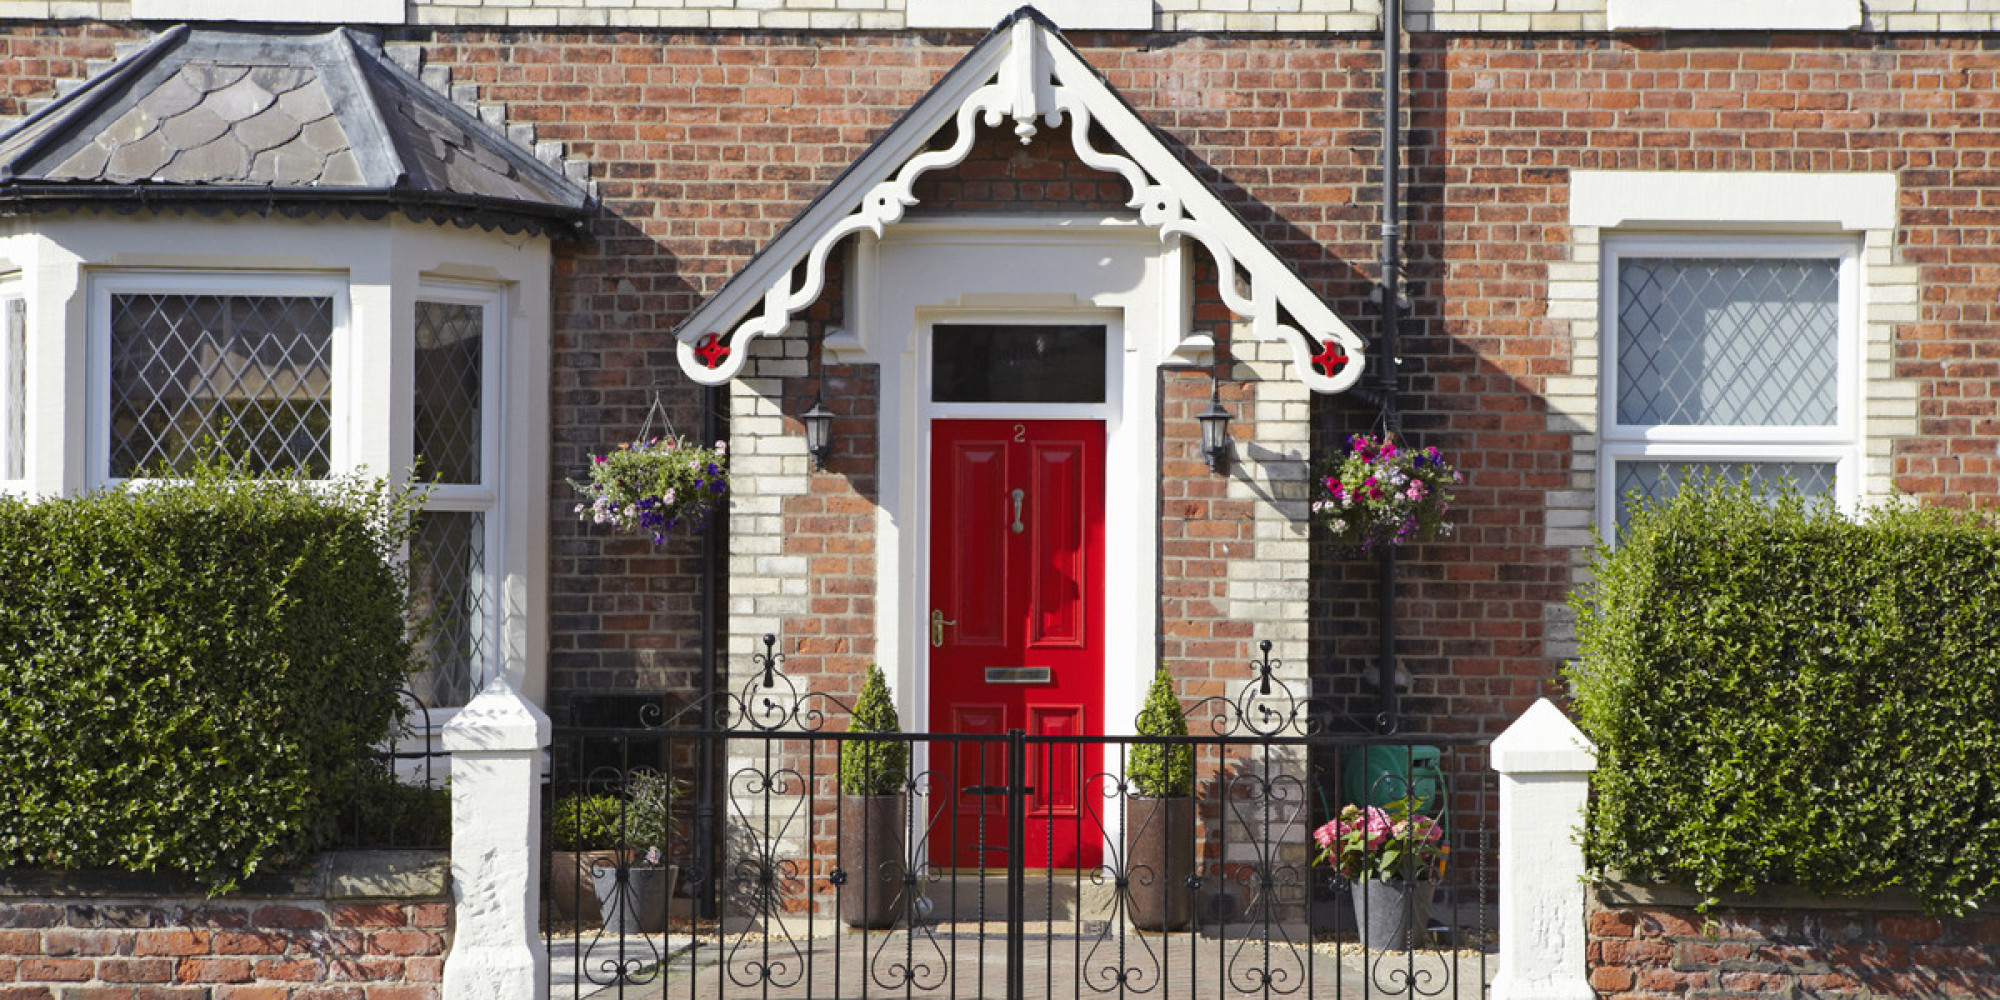 10 easy and cheap ways to improve your property huffpost uk for Cheap ways to improve your home